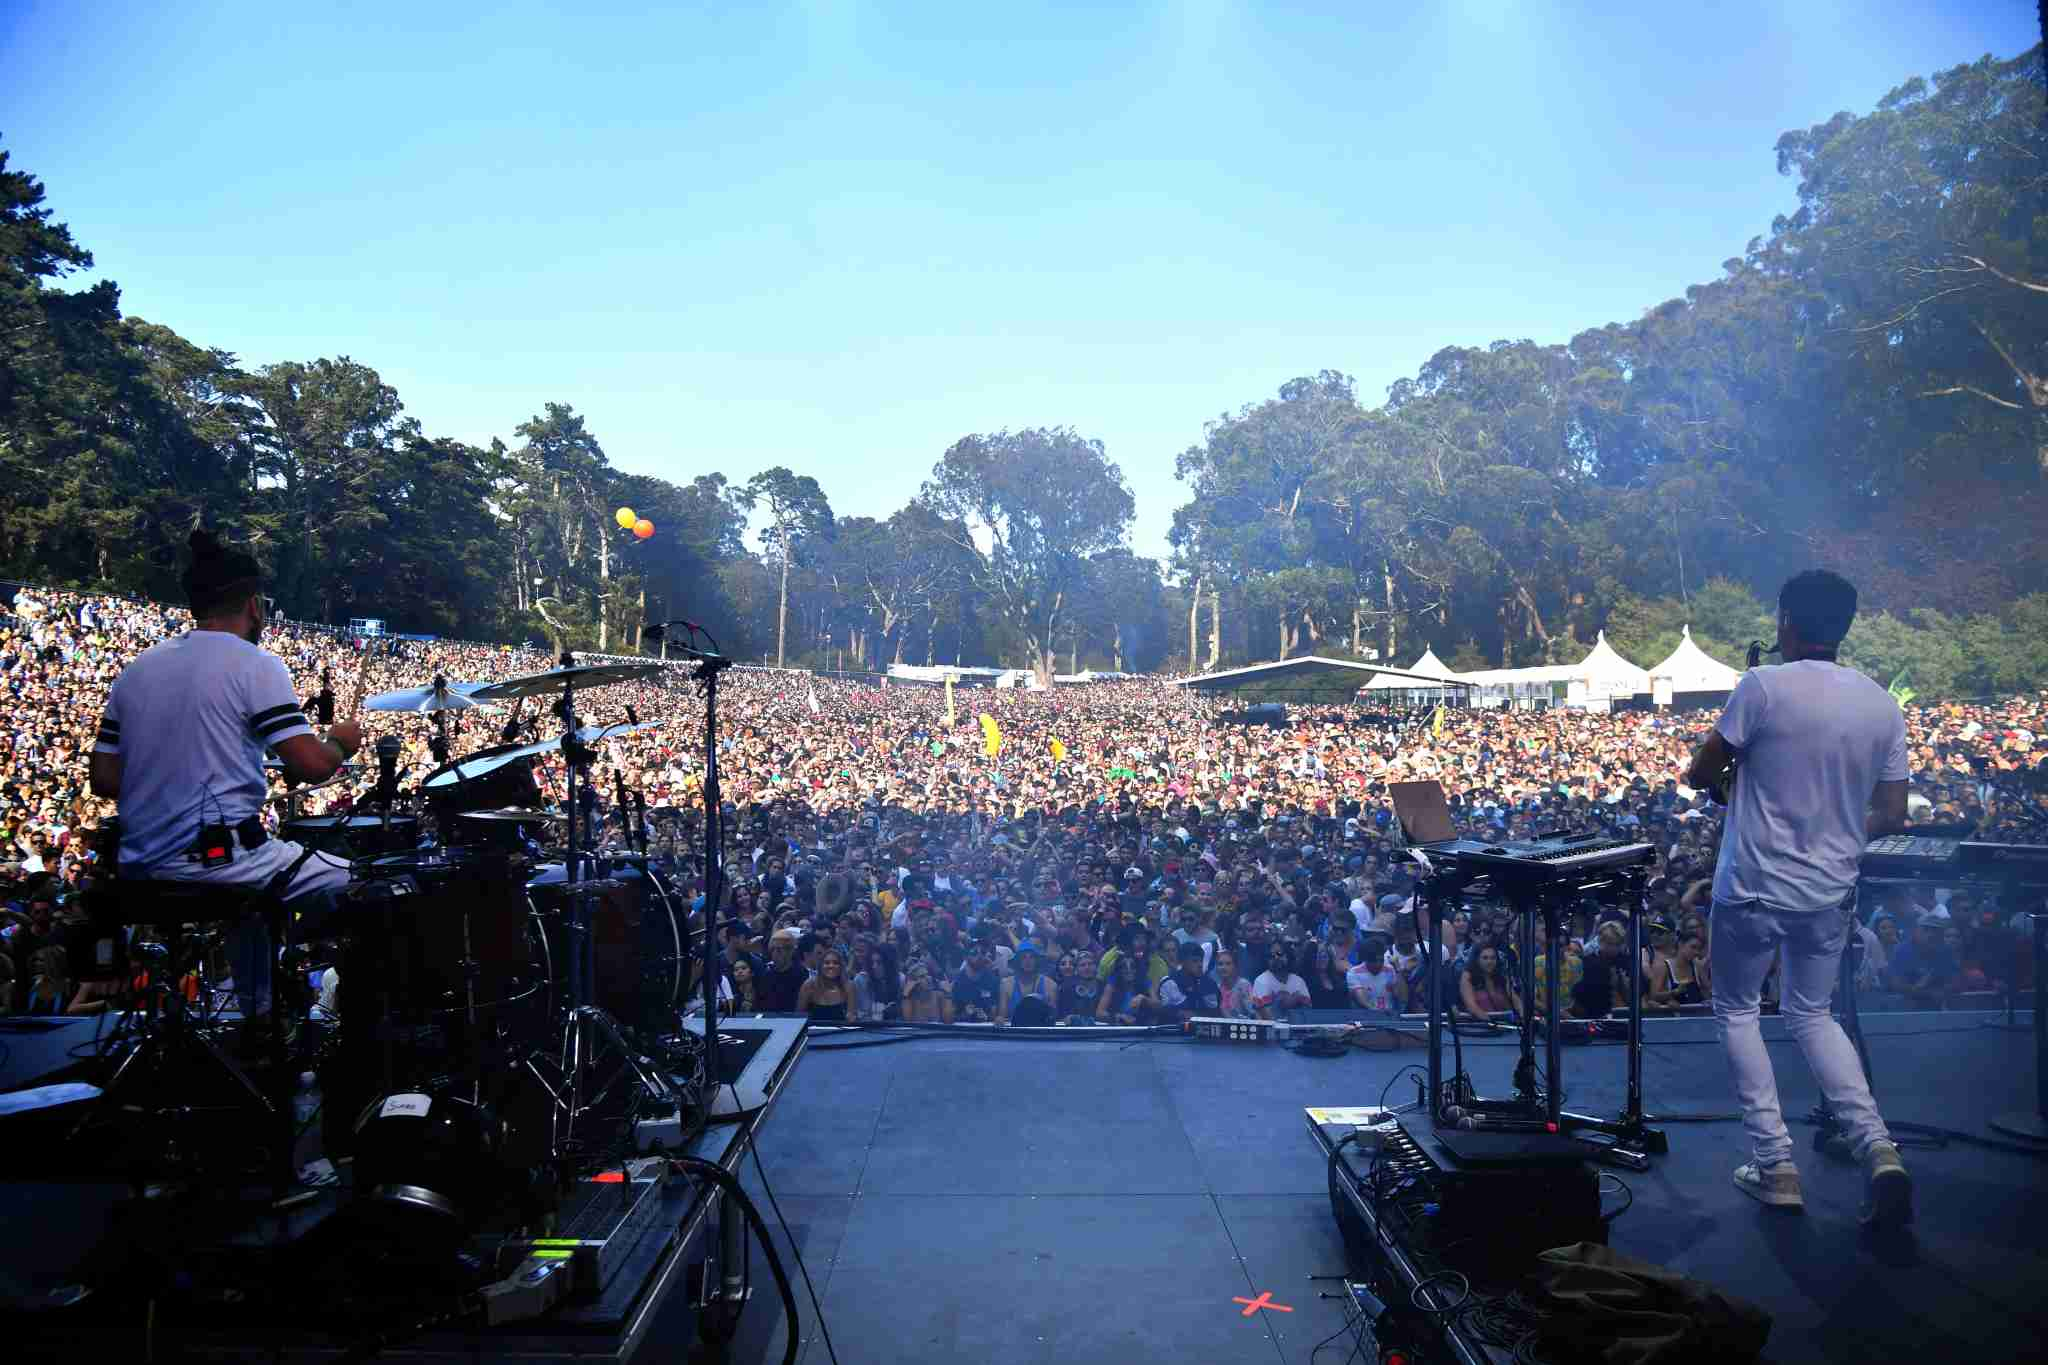 The Crowd at Outside Lands 2018 (Photo by Jeff Kravitz/FilmMagic)